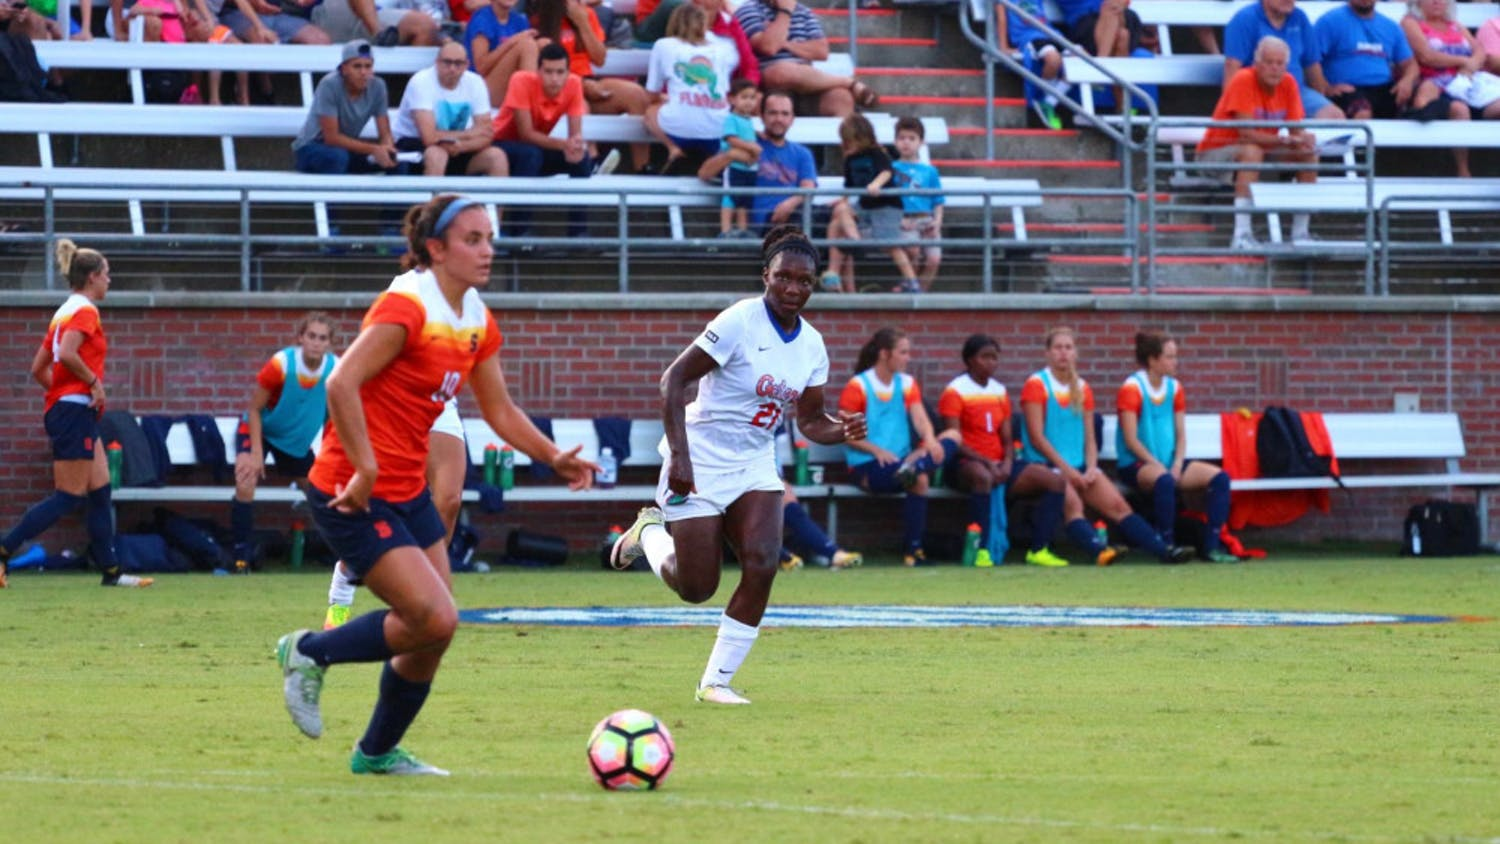 Deanne Rose chases a Syracuse player with possession of the ball during Florida's 2-1 win against the Orange on Aug. 27 at Donald R. Dizney Stadium.